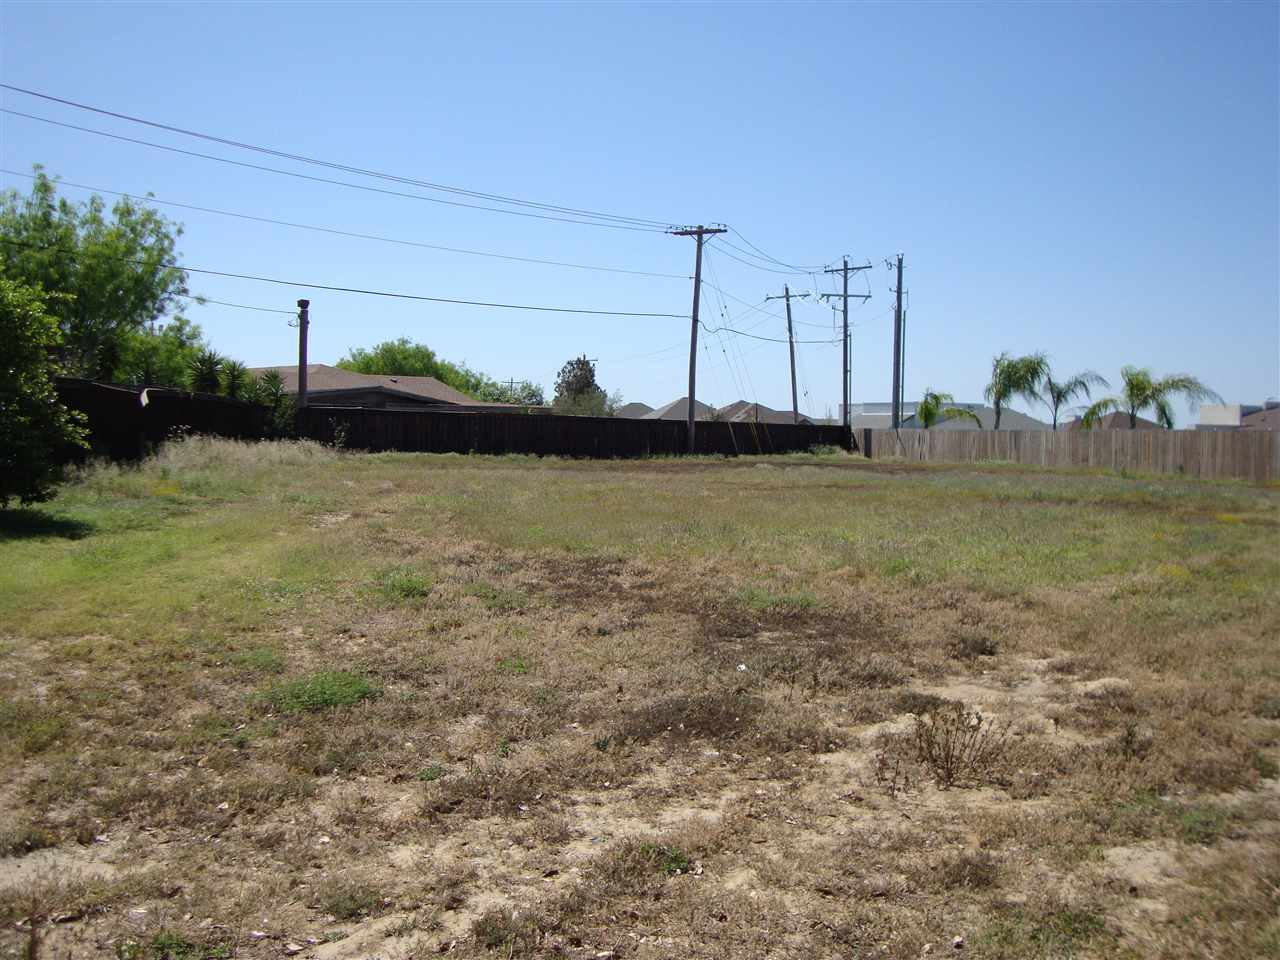 2301 Grisell Dr Laredo Tx 78041 Real Estate Listings For Sale